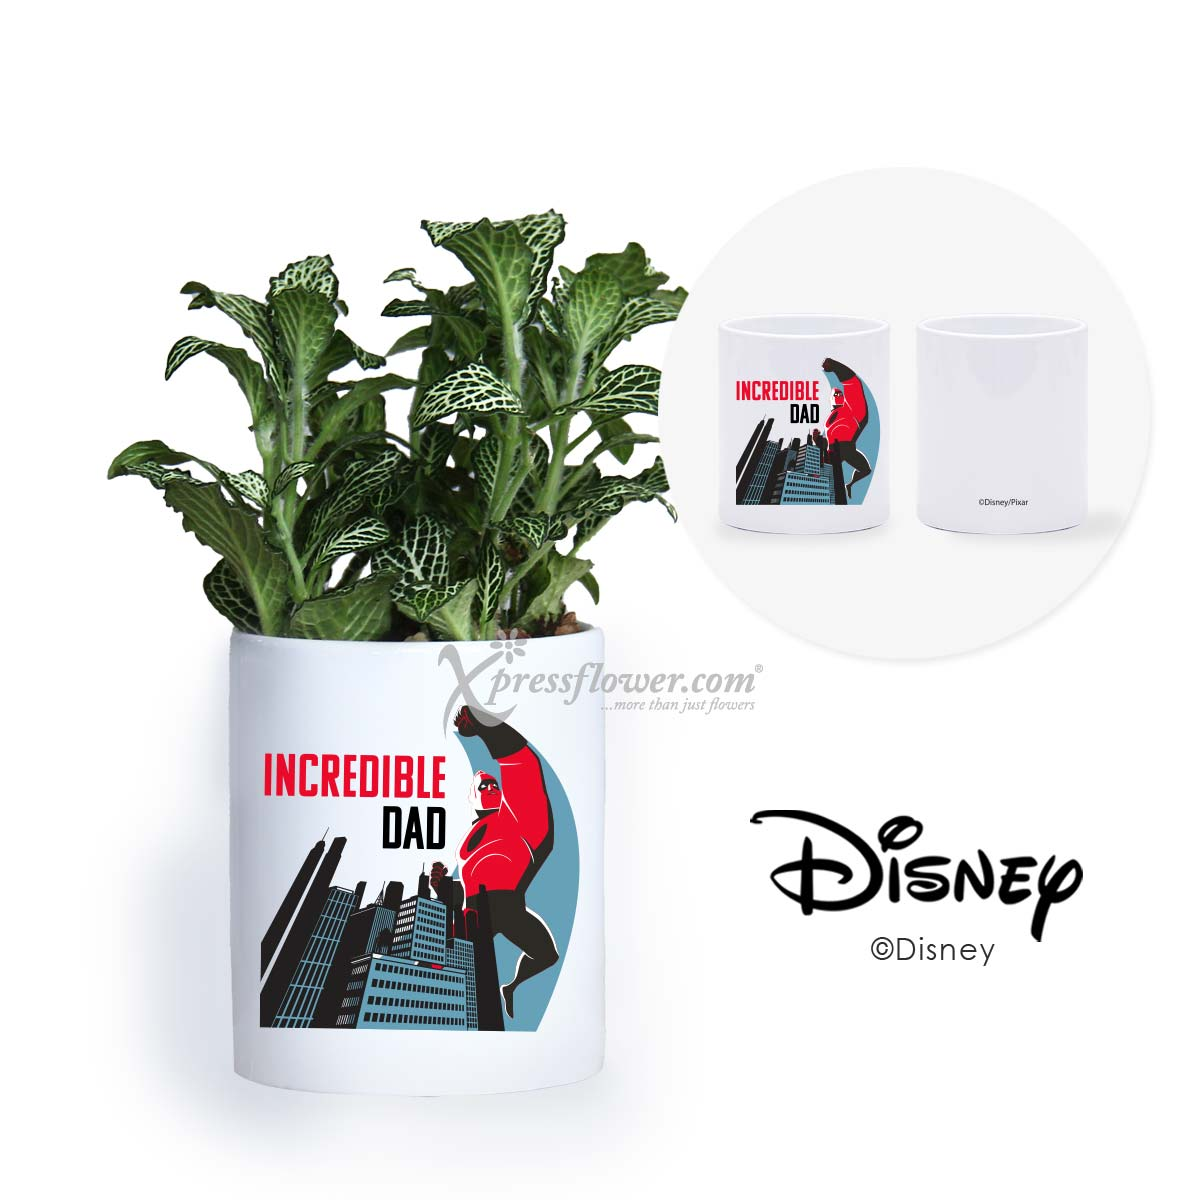 Incredible Dad (Fittonia plant with Disney holder)